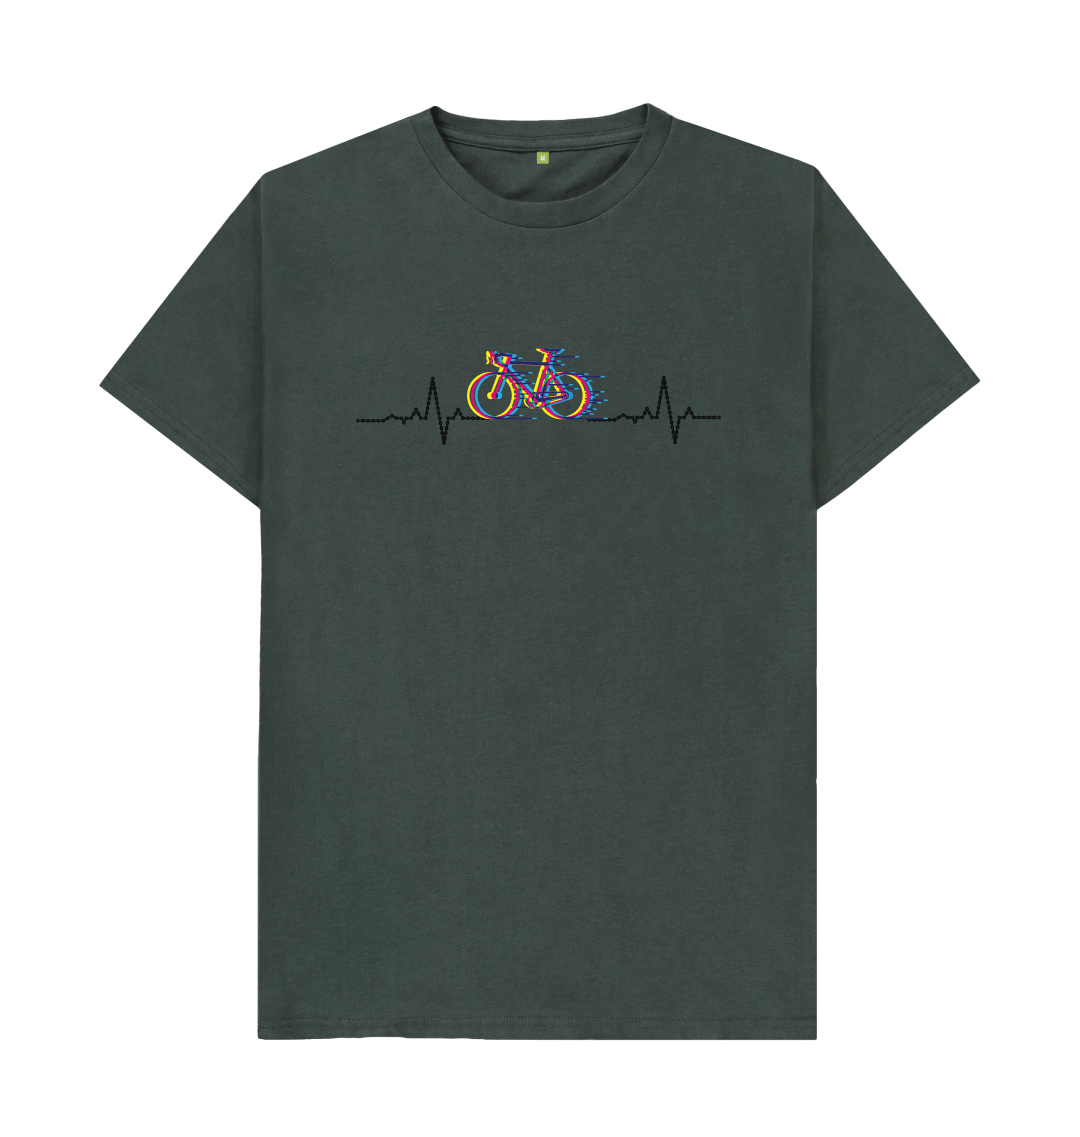 Rapanui/Hike & Ride Heartbeat Tee- 25% off